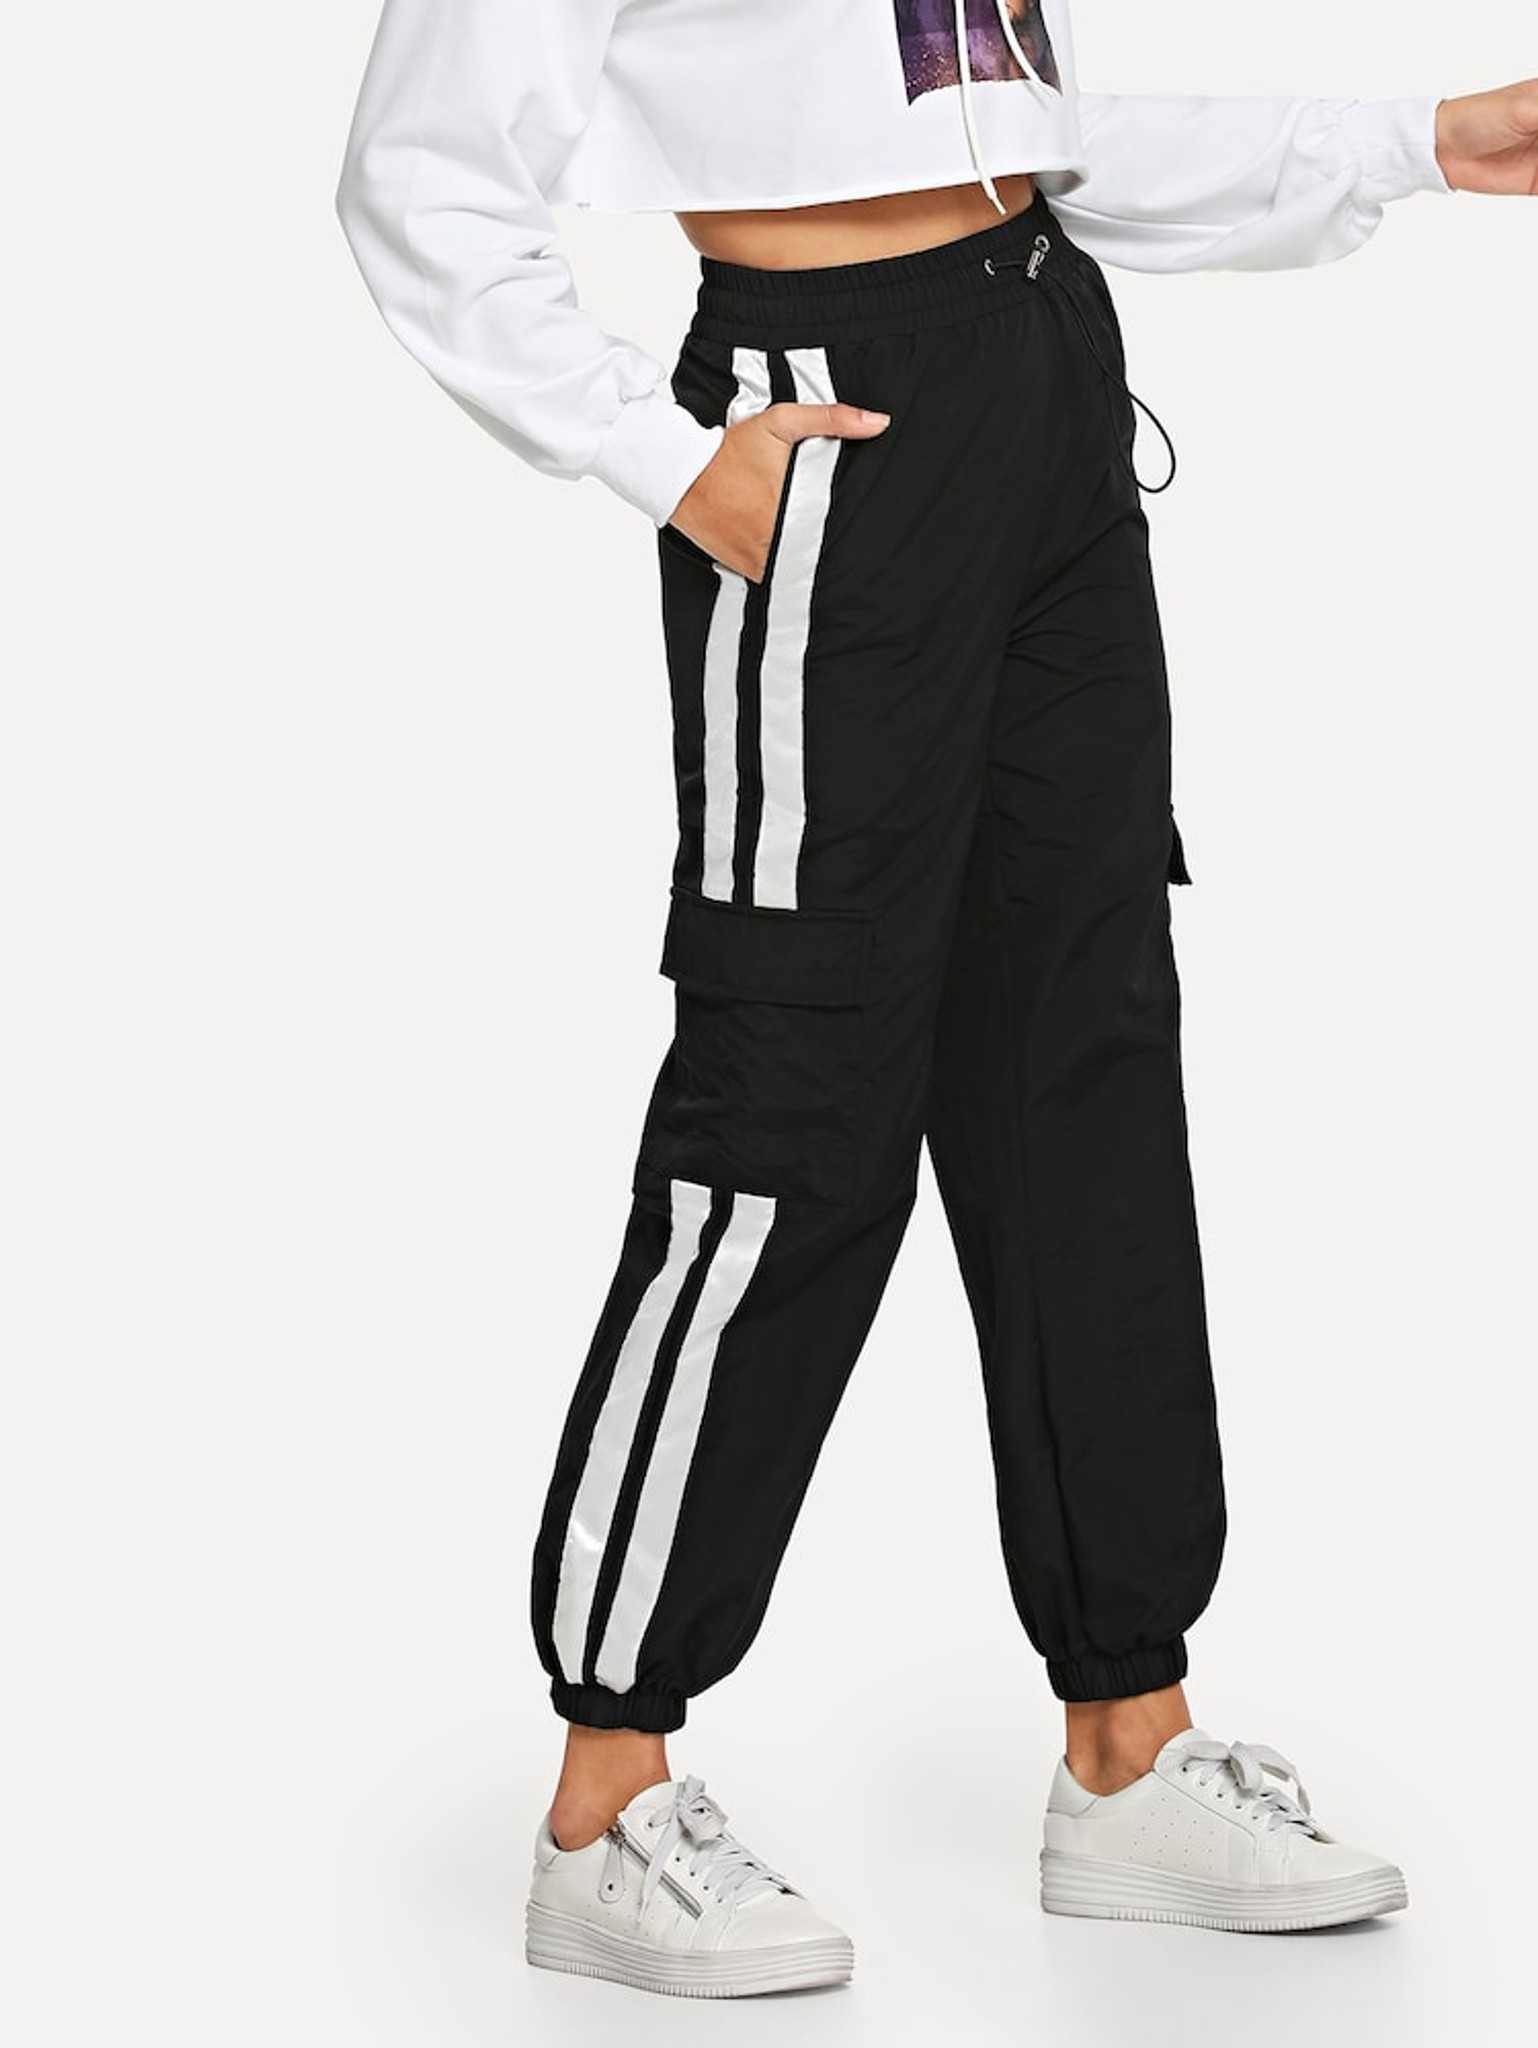 Women's HJ226 Side Contrast Striped Jogger Pants by Fifth Avenue - Black